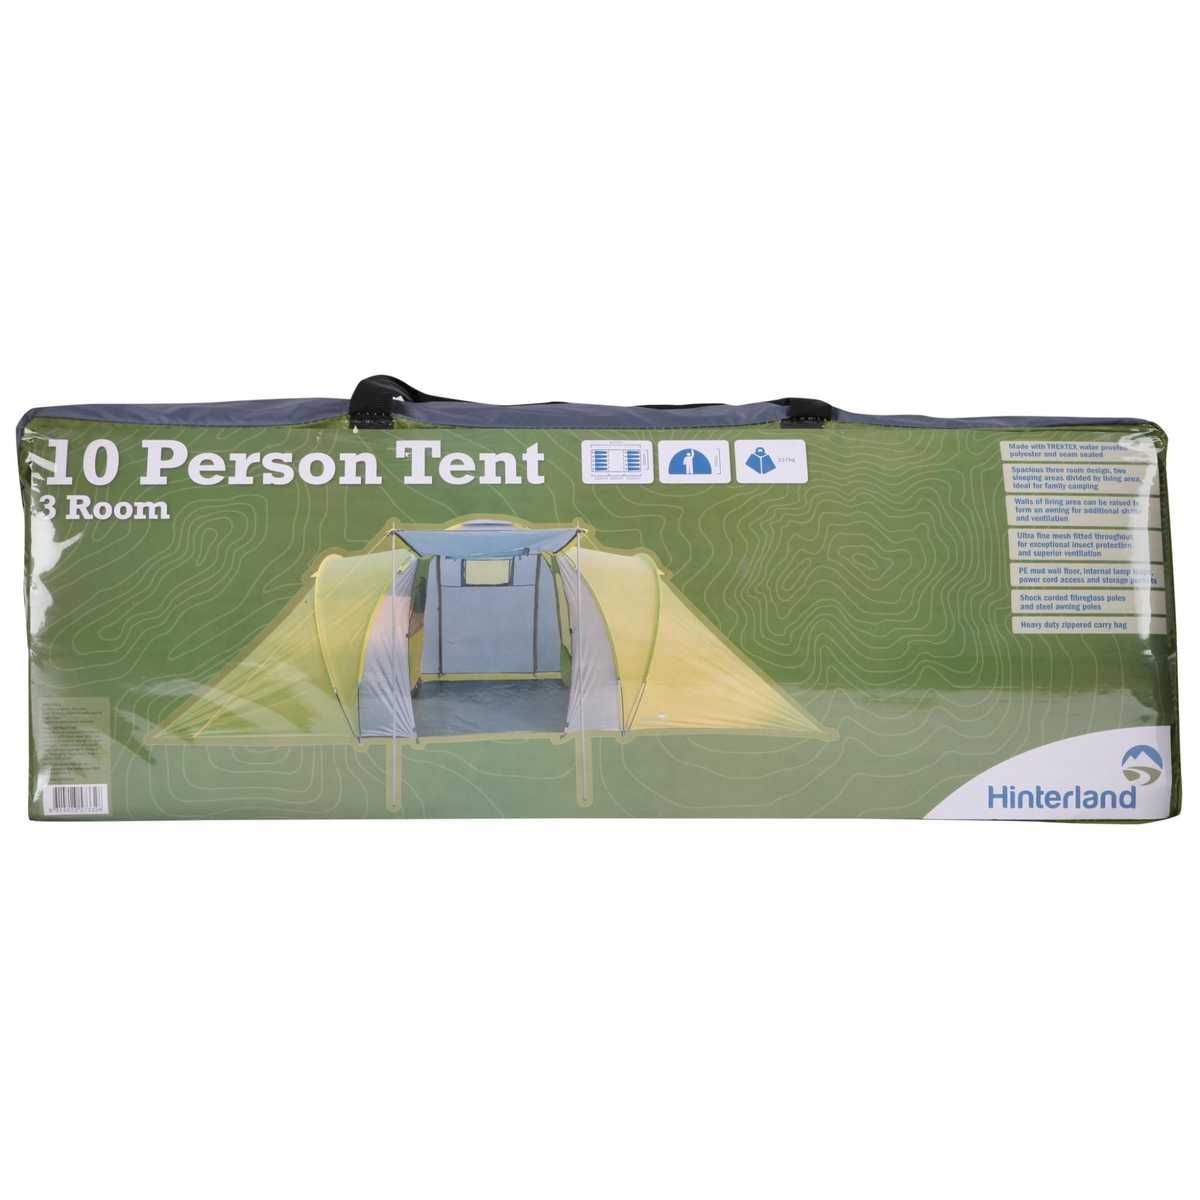 Hinterland 10 Person 3 Room Tent | BIG W | Lets go camping ...